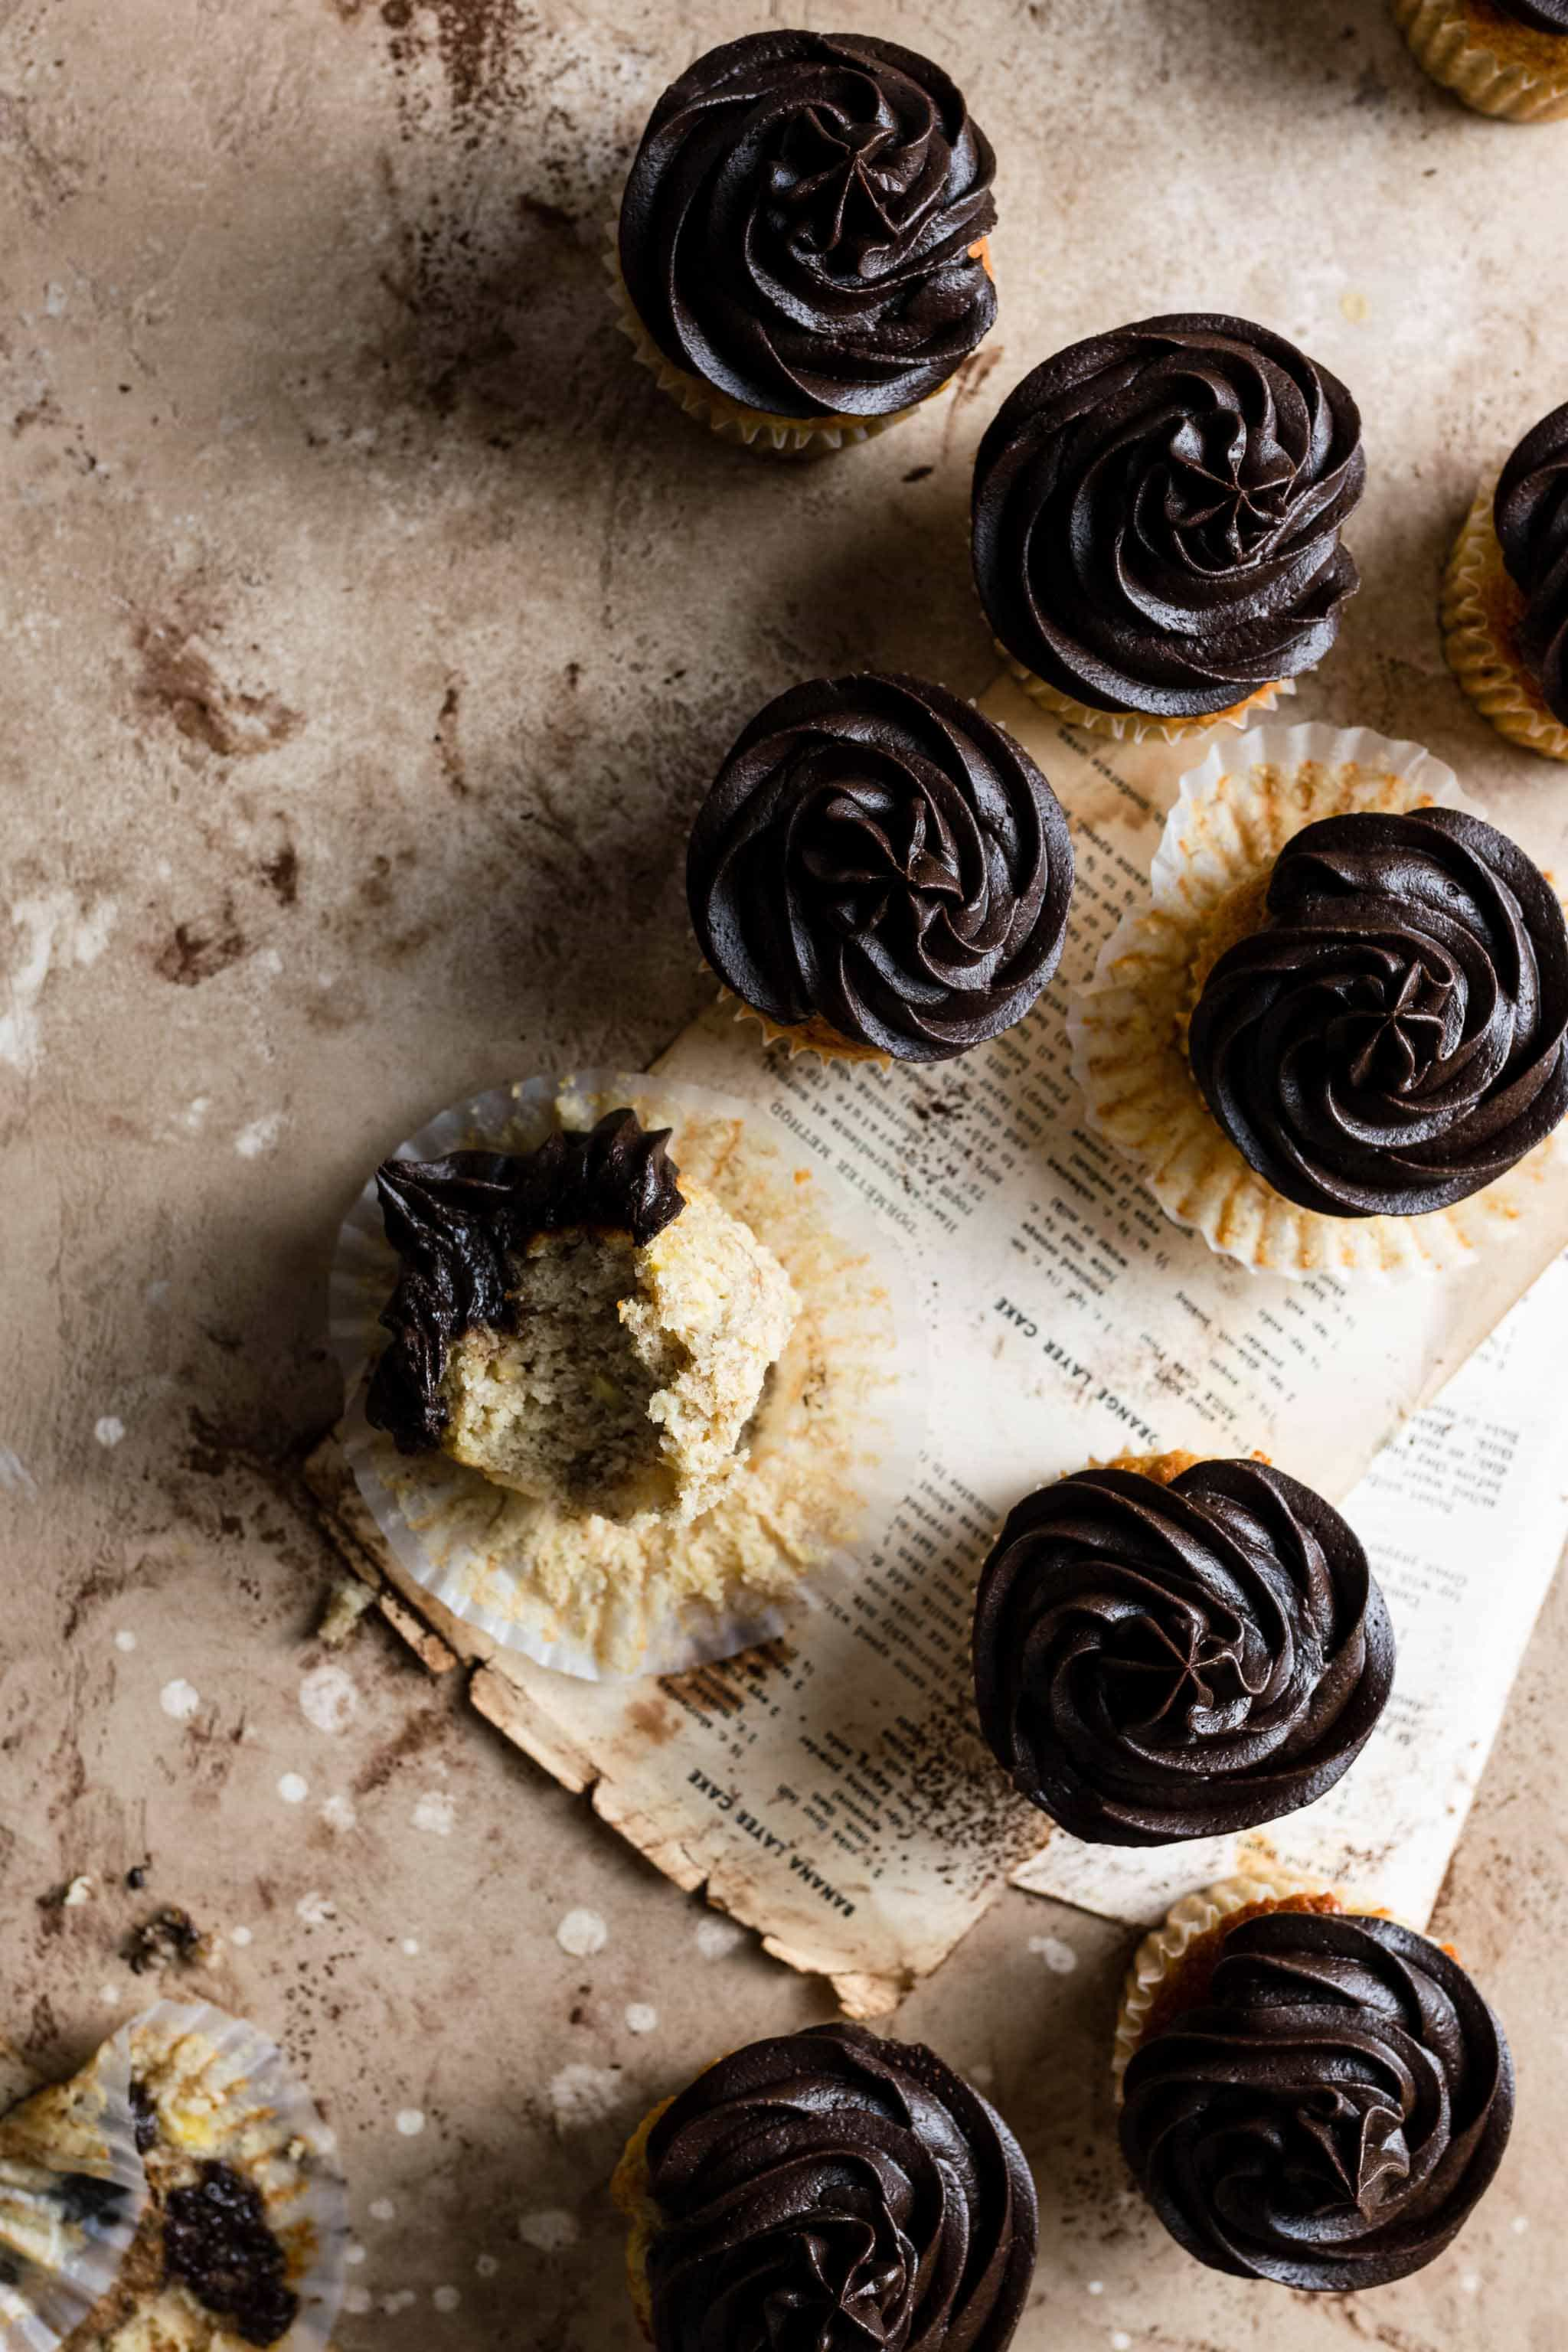 Cupcakes on a table with recipe pages.